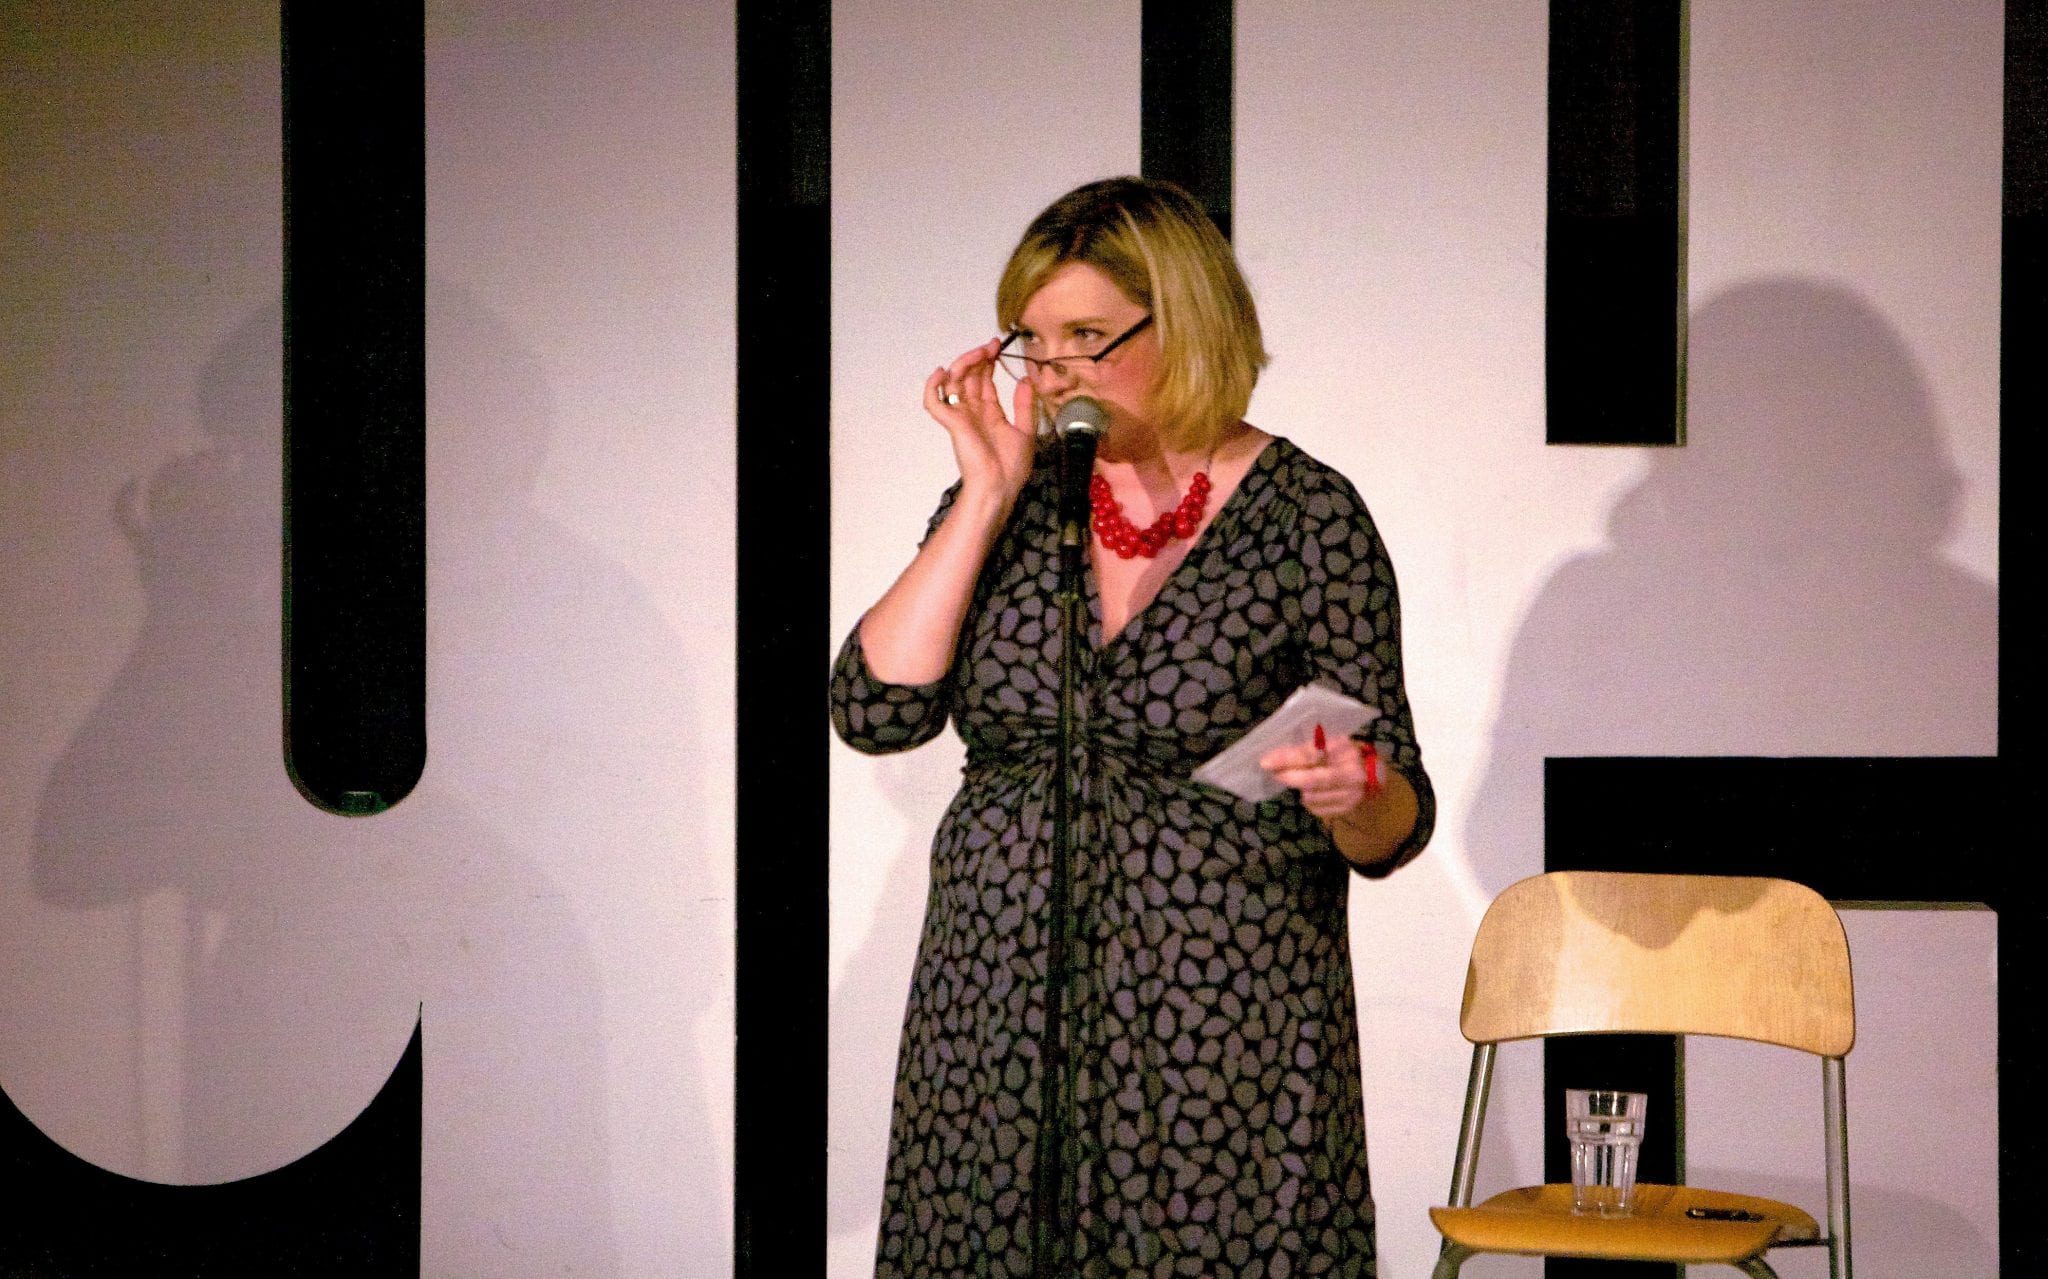 Sarah Millican on stage at The Glee